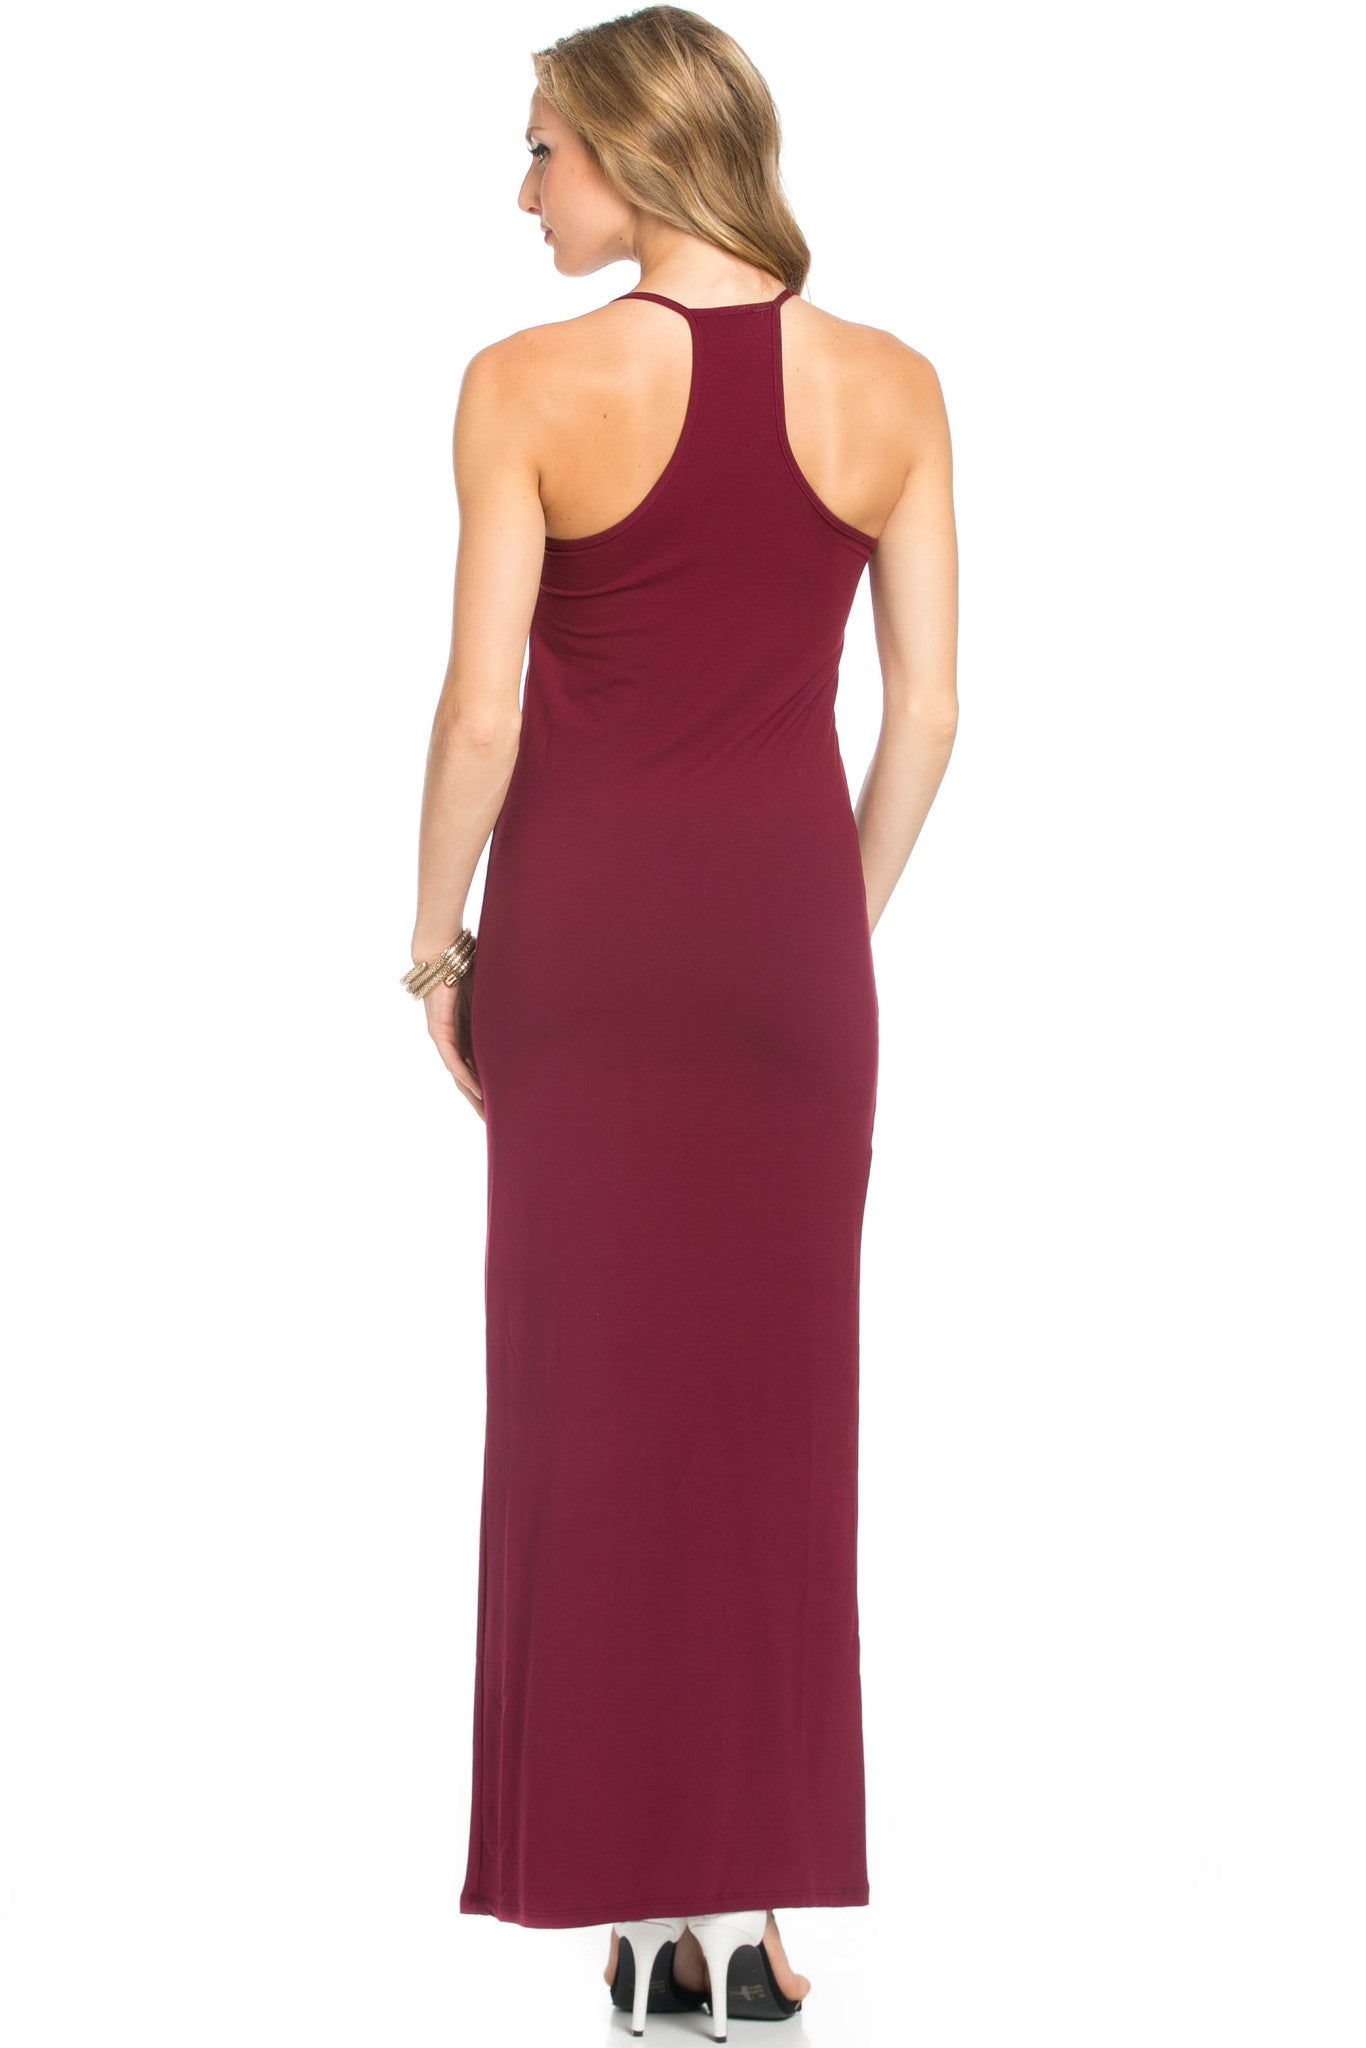 Micro Suede Burgundy Maxi Dress - Dresses - My Yuccie - 4